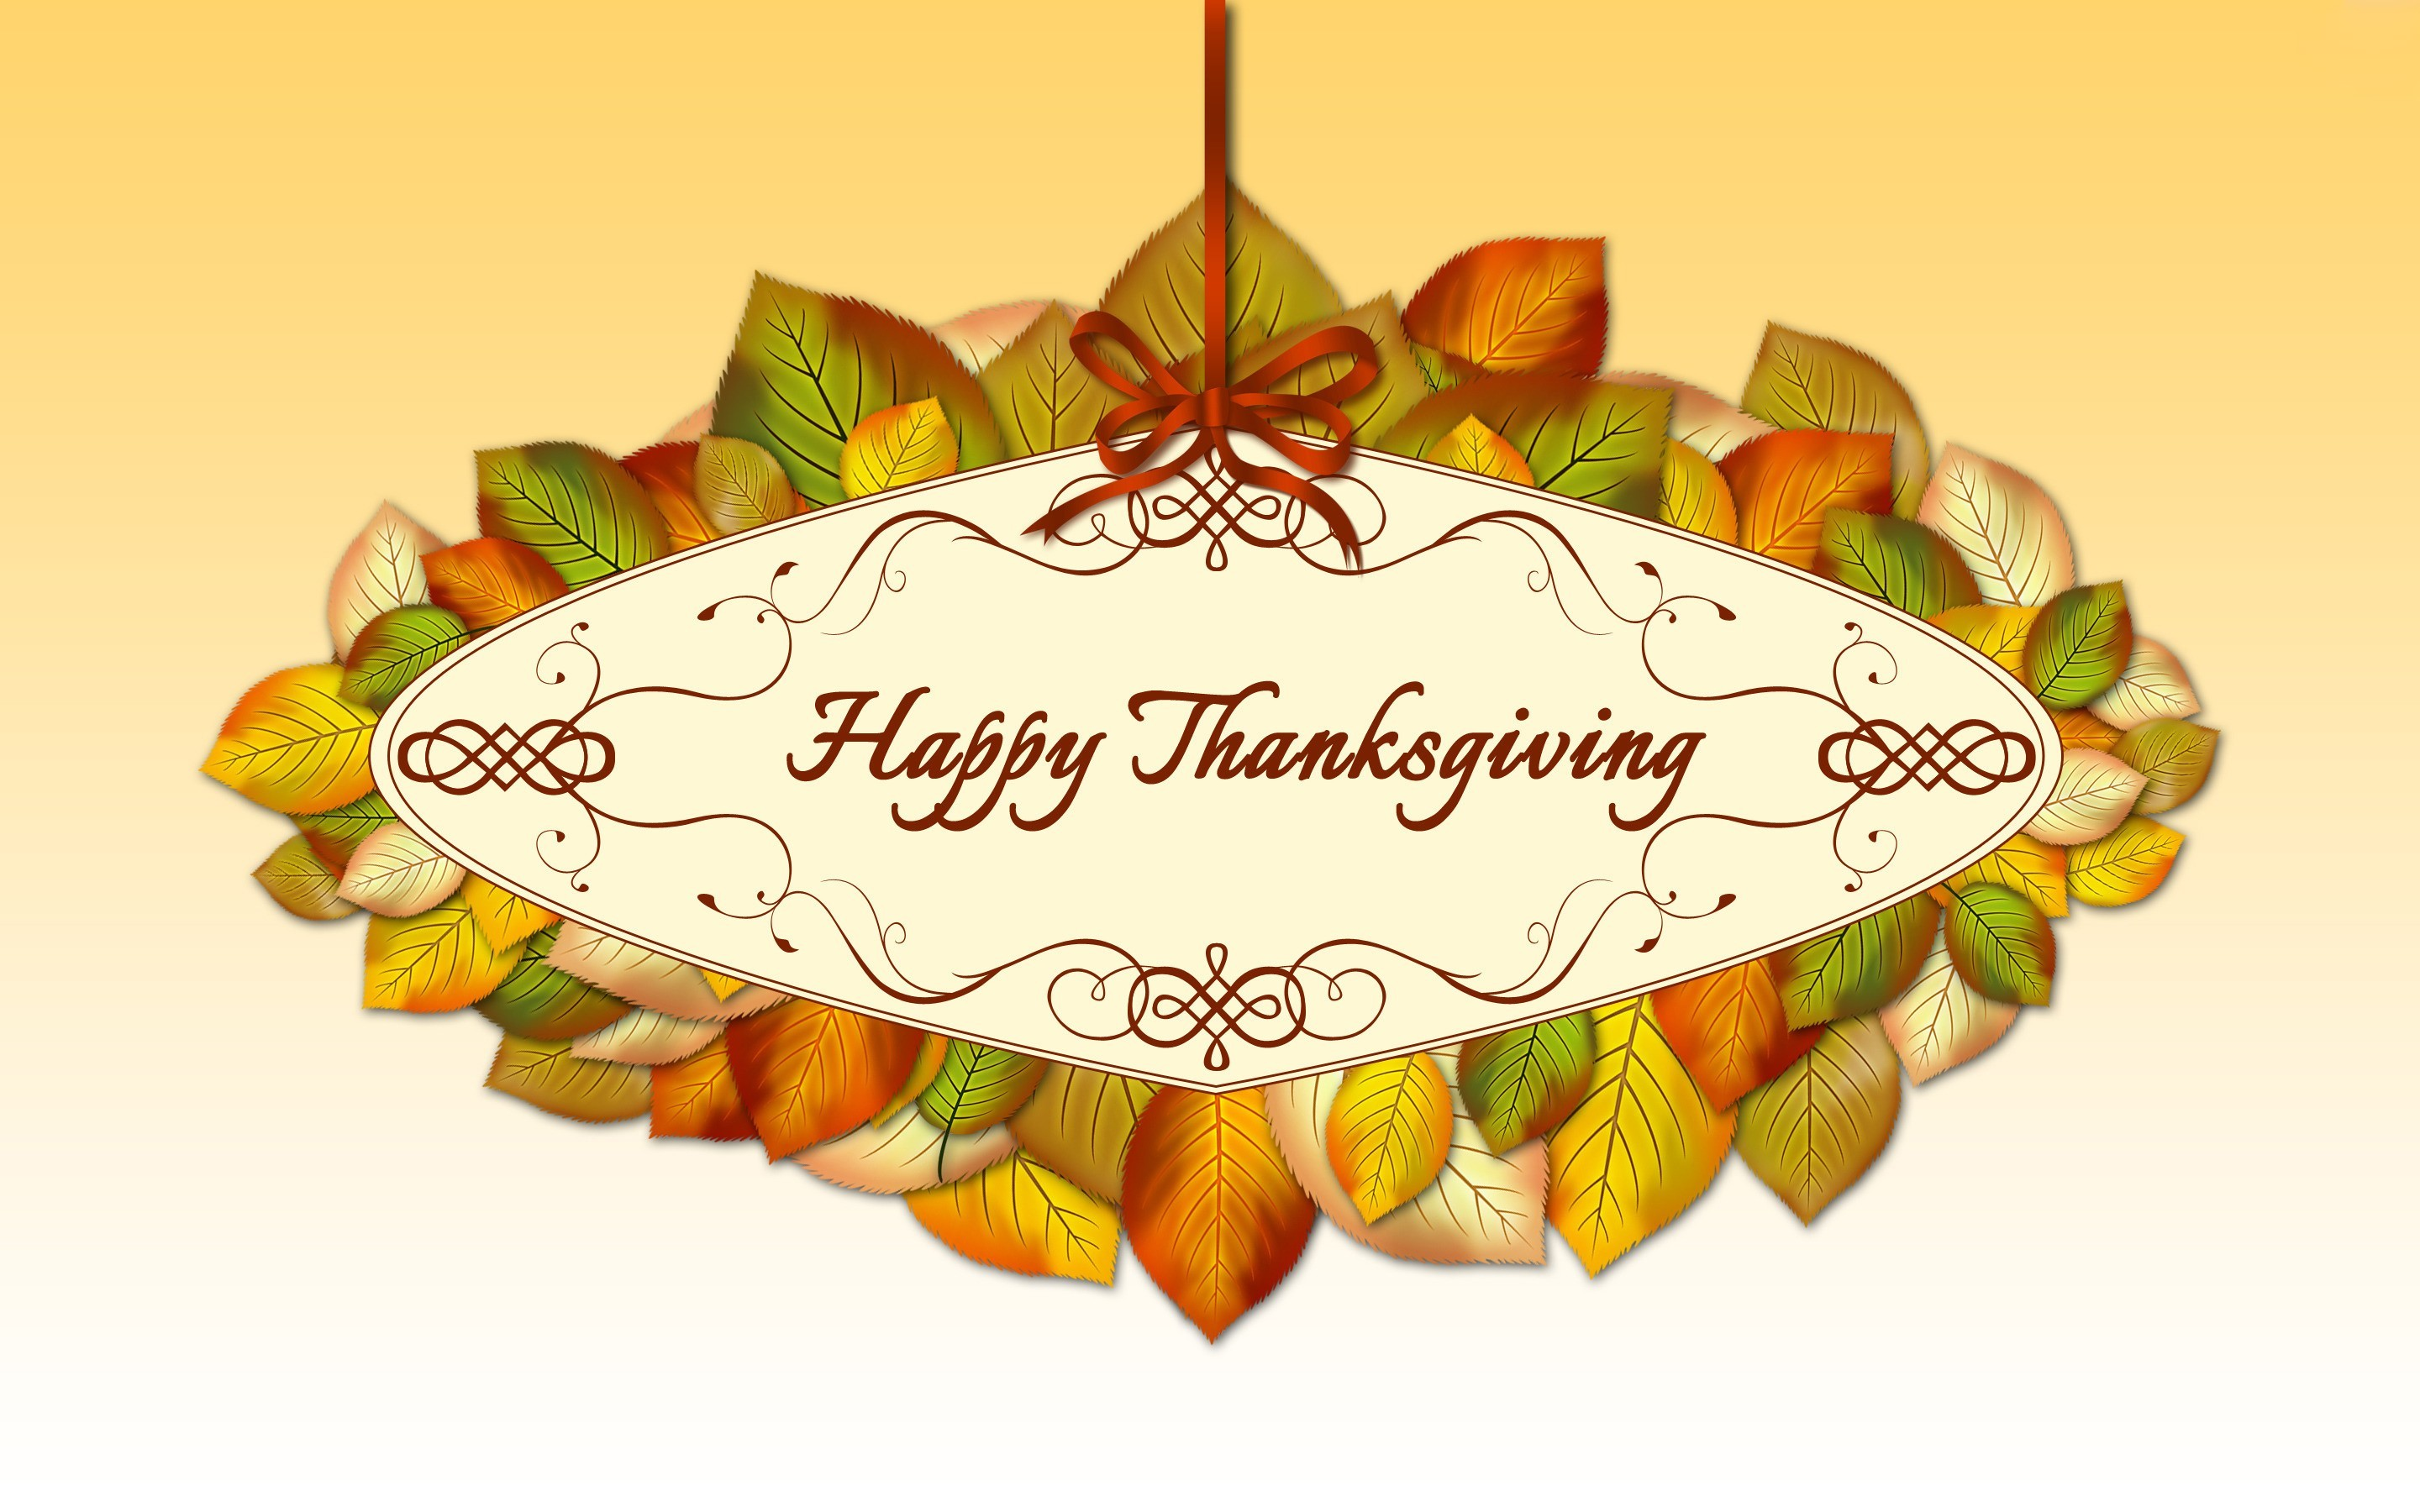 2880x1800 Happy Thanksgiving Holiday desktop wallpaper, Leaf wallpaper, Thanksgiving  wallpaper - Holidays no.